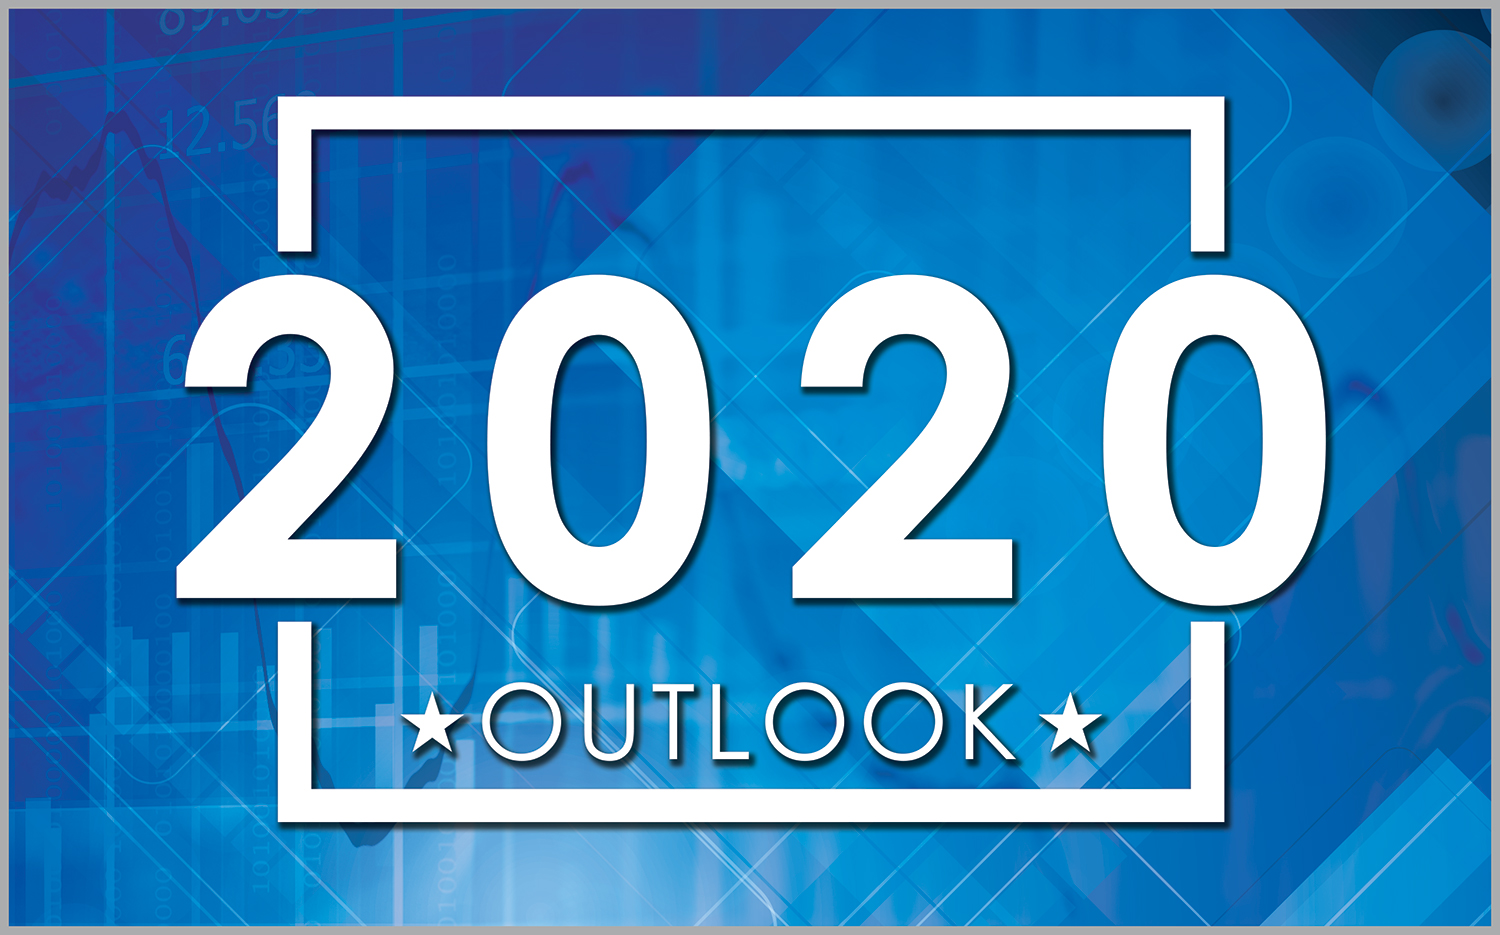 Hanlon_2020_Outlook